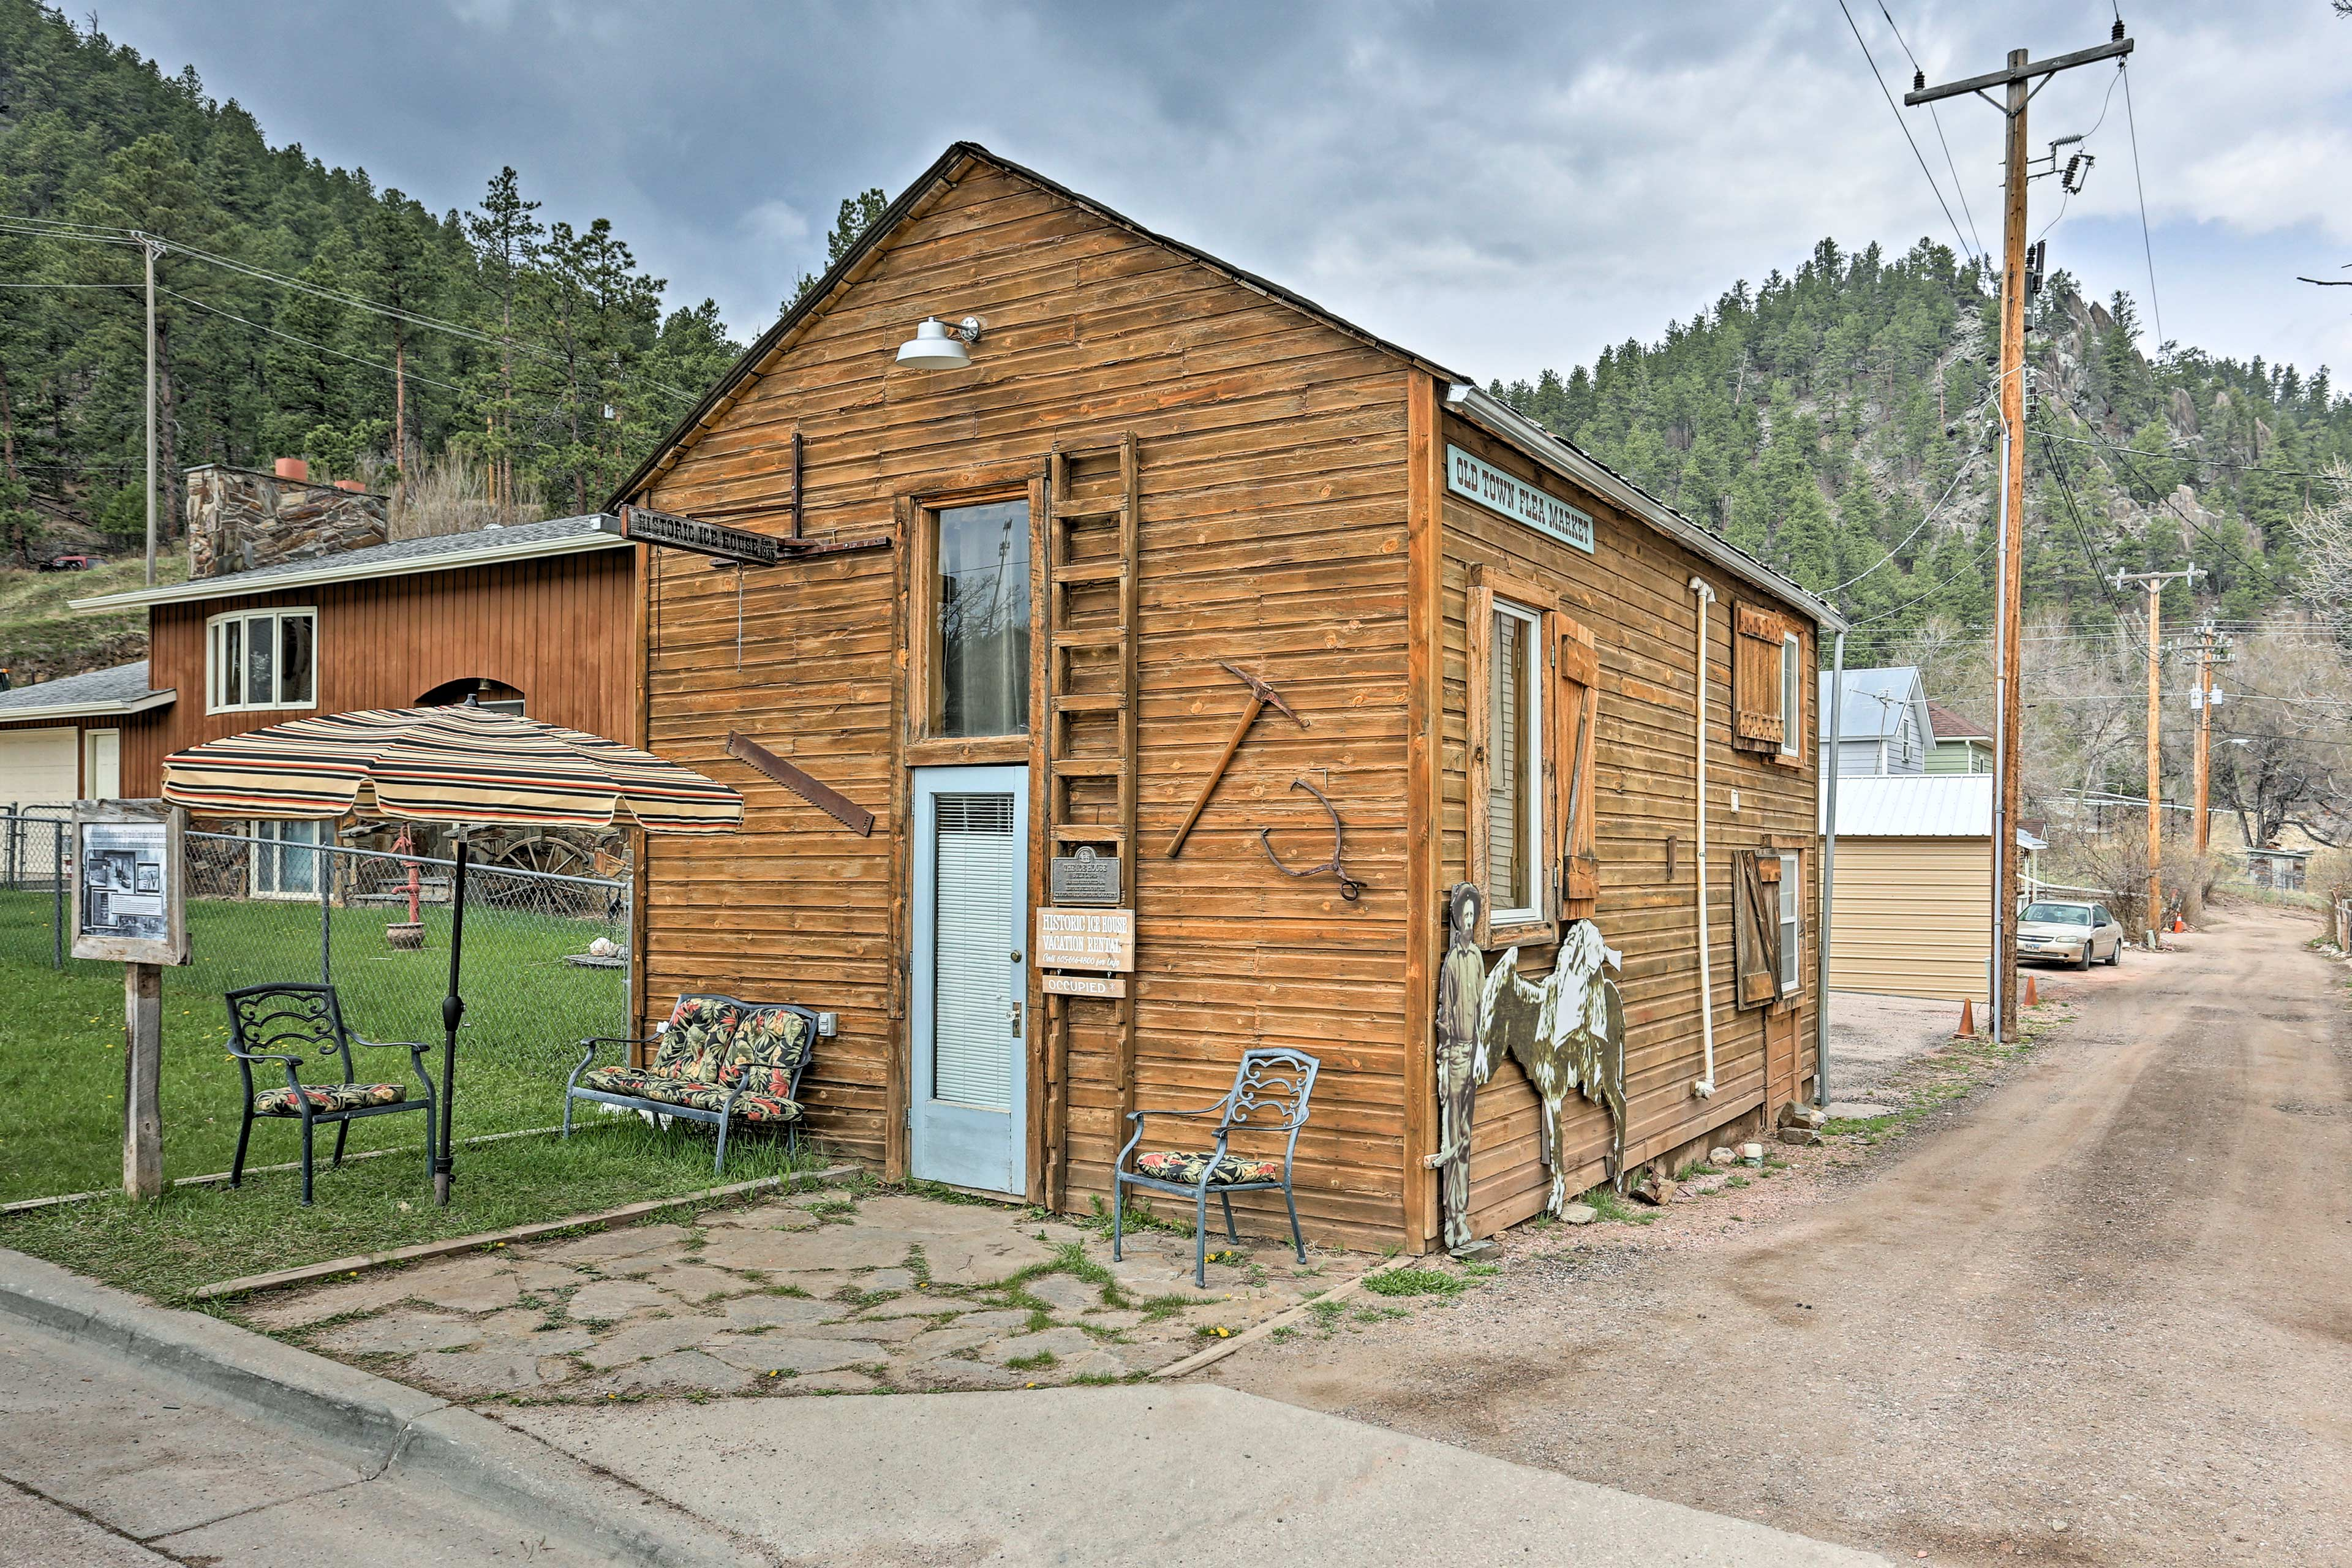 Follow your wanderlust to 'Ice House', a vacation rental studio in Keystone!